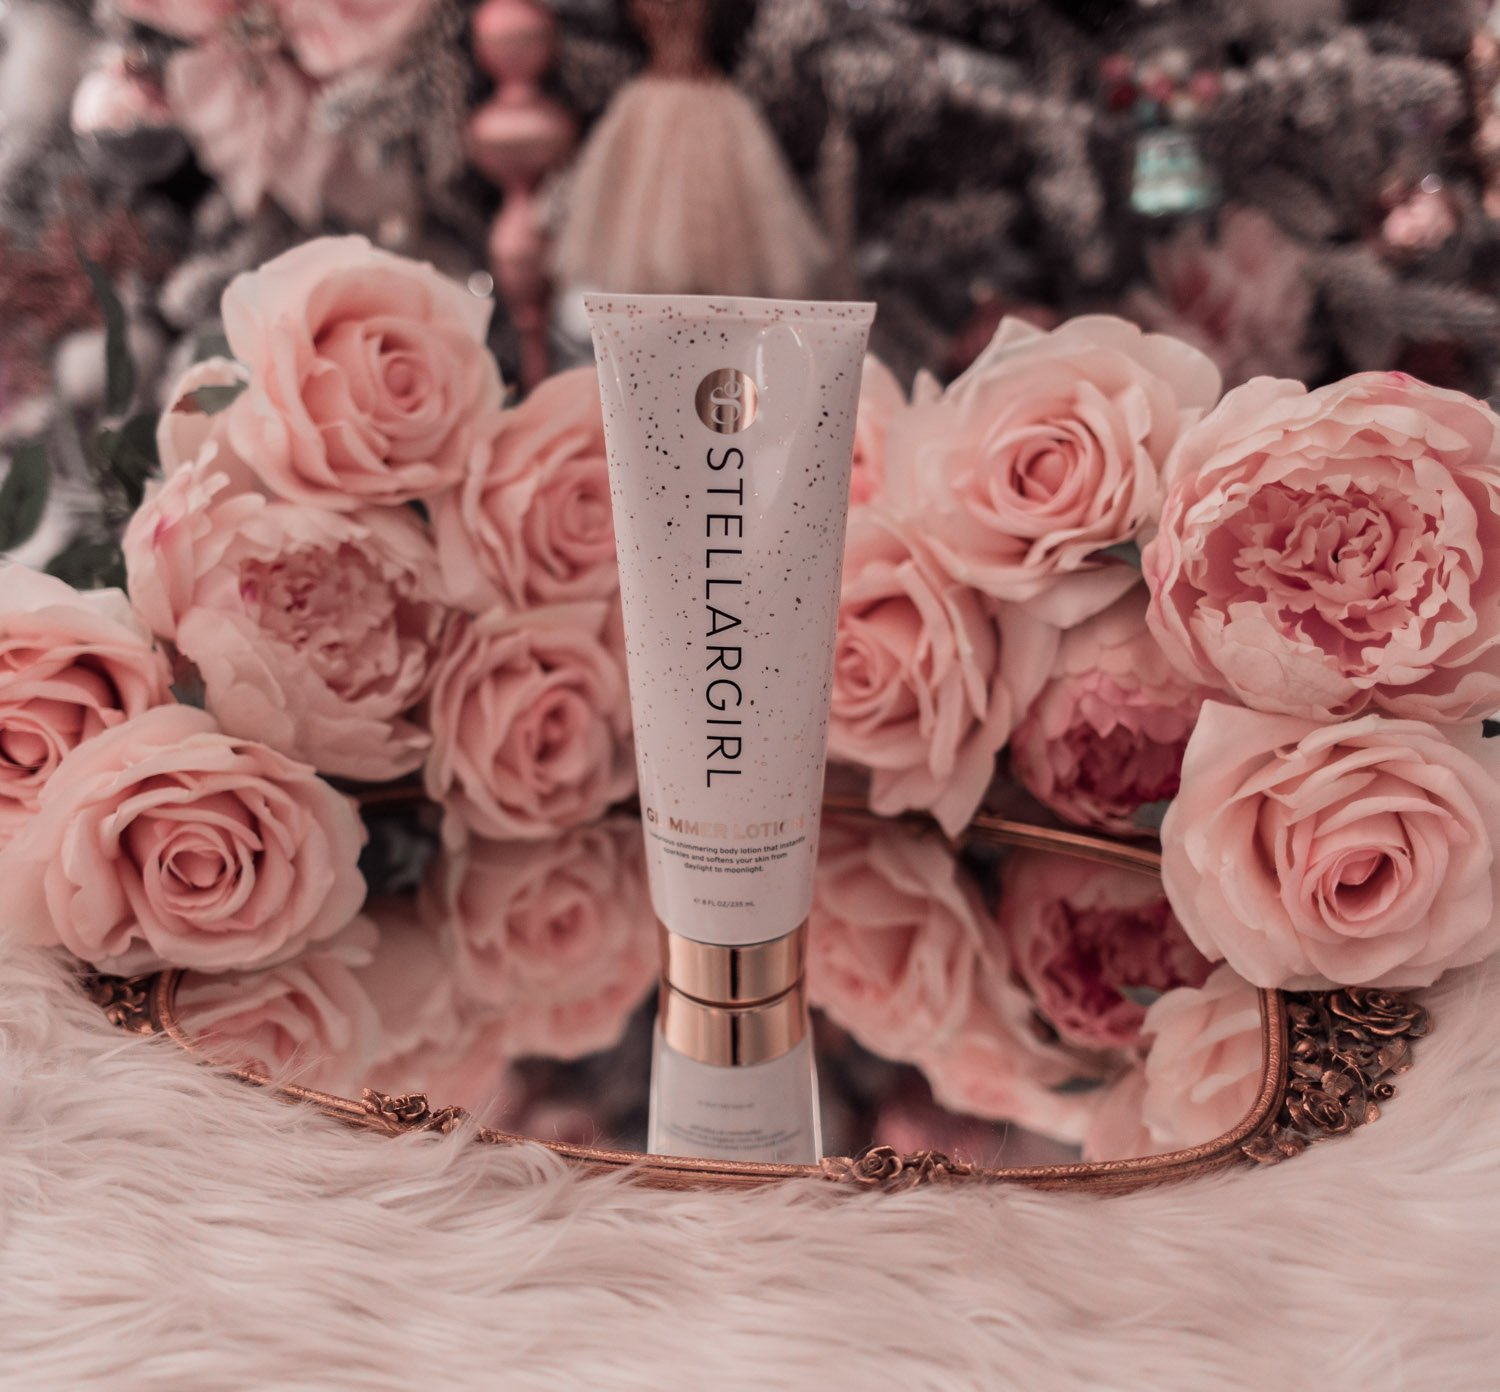 Fashion Blogger Elizabeth Hugen of Lizzie in Lace shares holiday beauty gifts to gift yourself including this fun Stellargirl Glimmer lotion